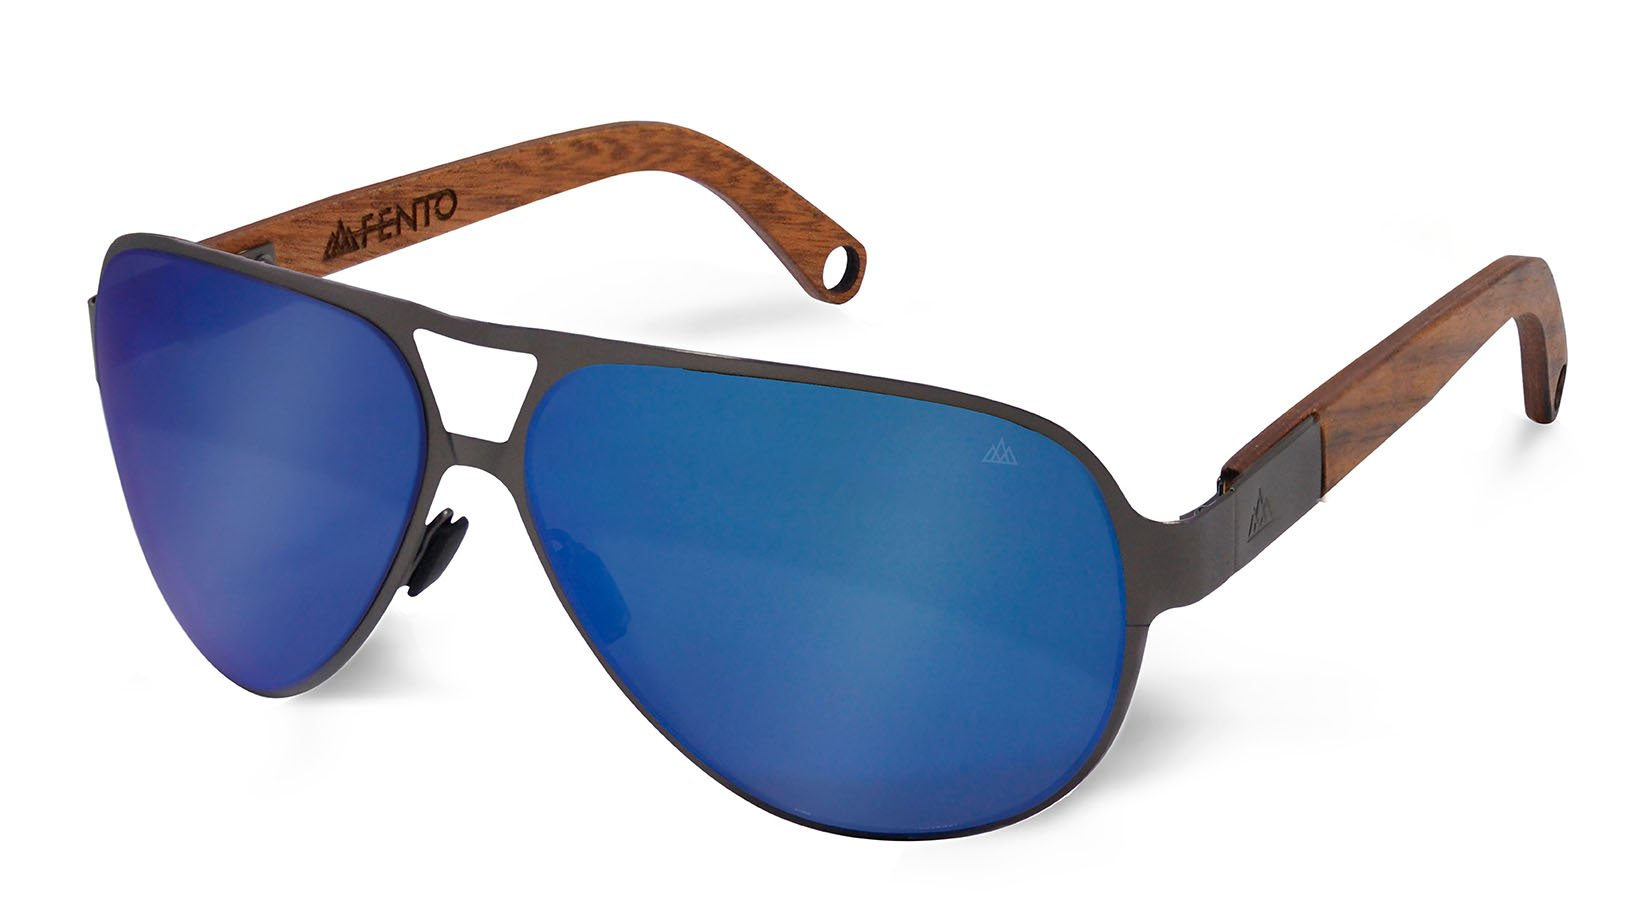 FENTO WOODEN SUNGLASSES KAVELI (Teak, Blue)